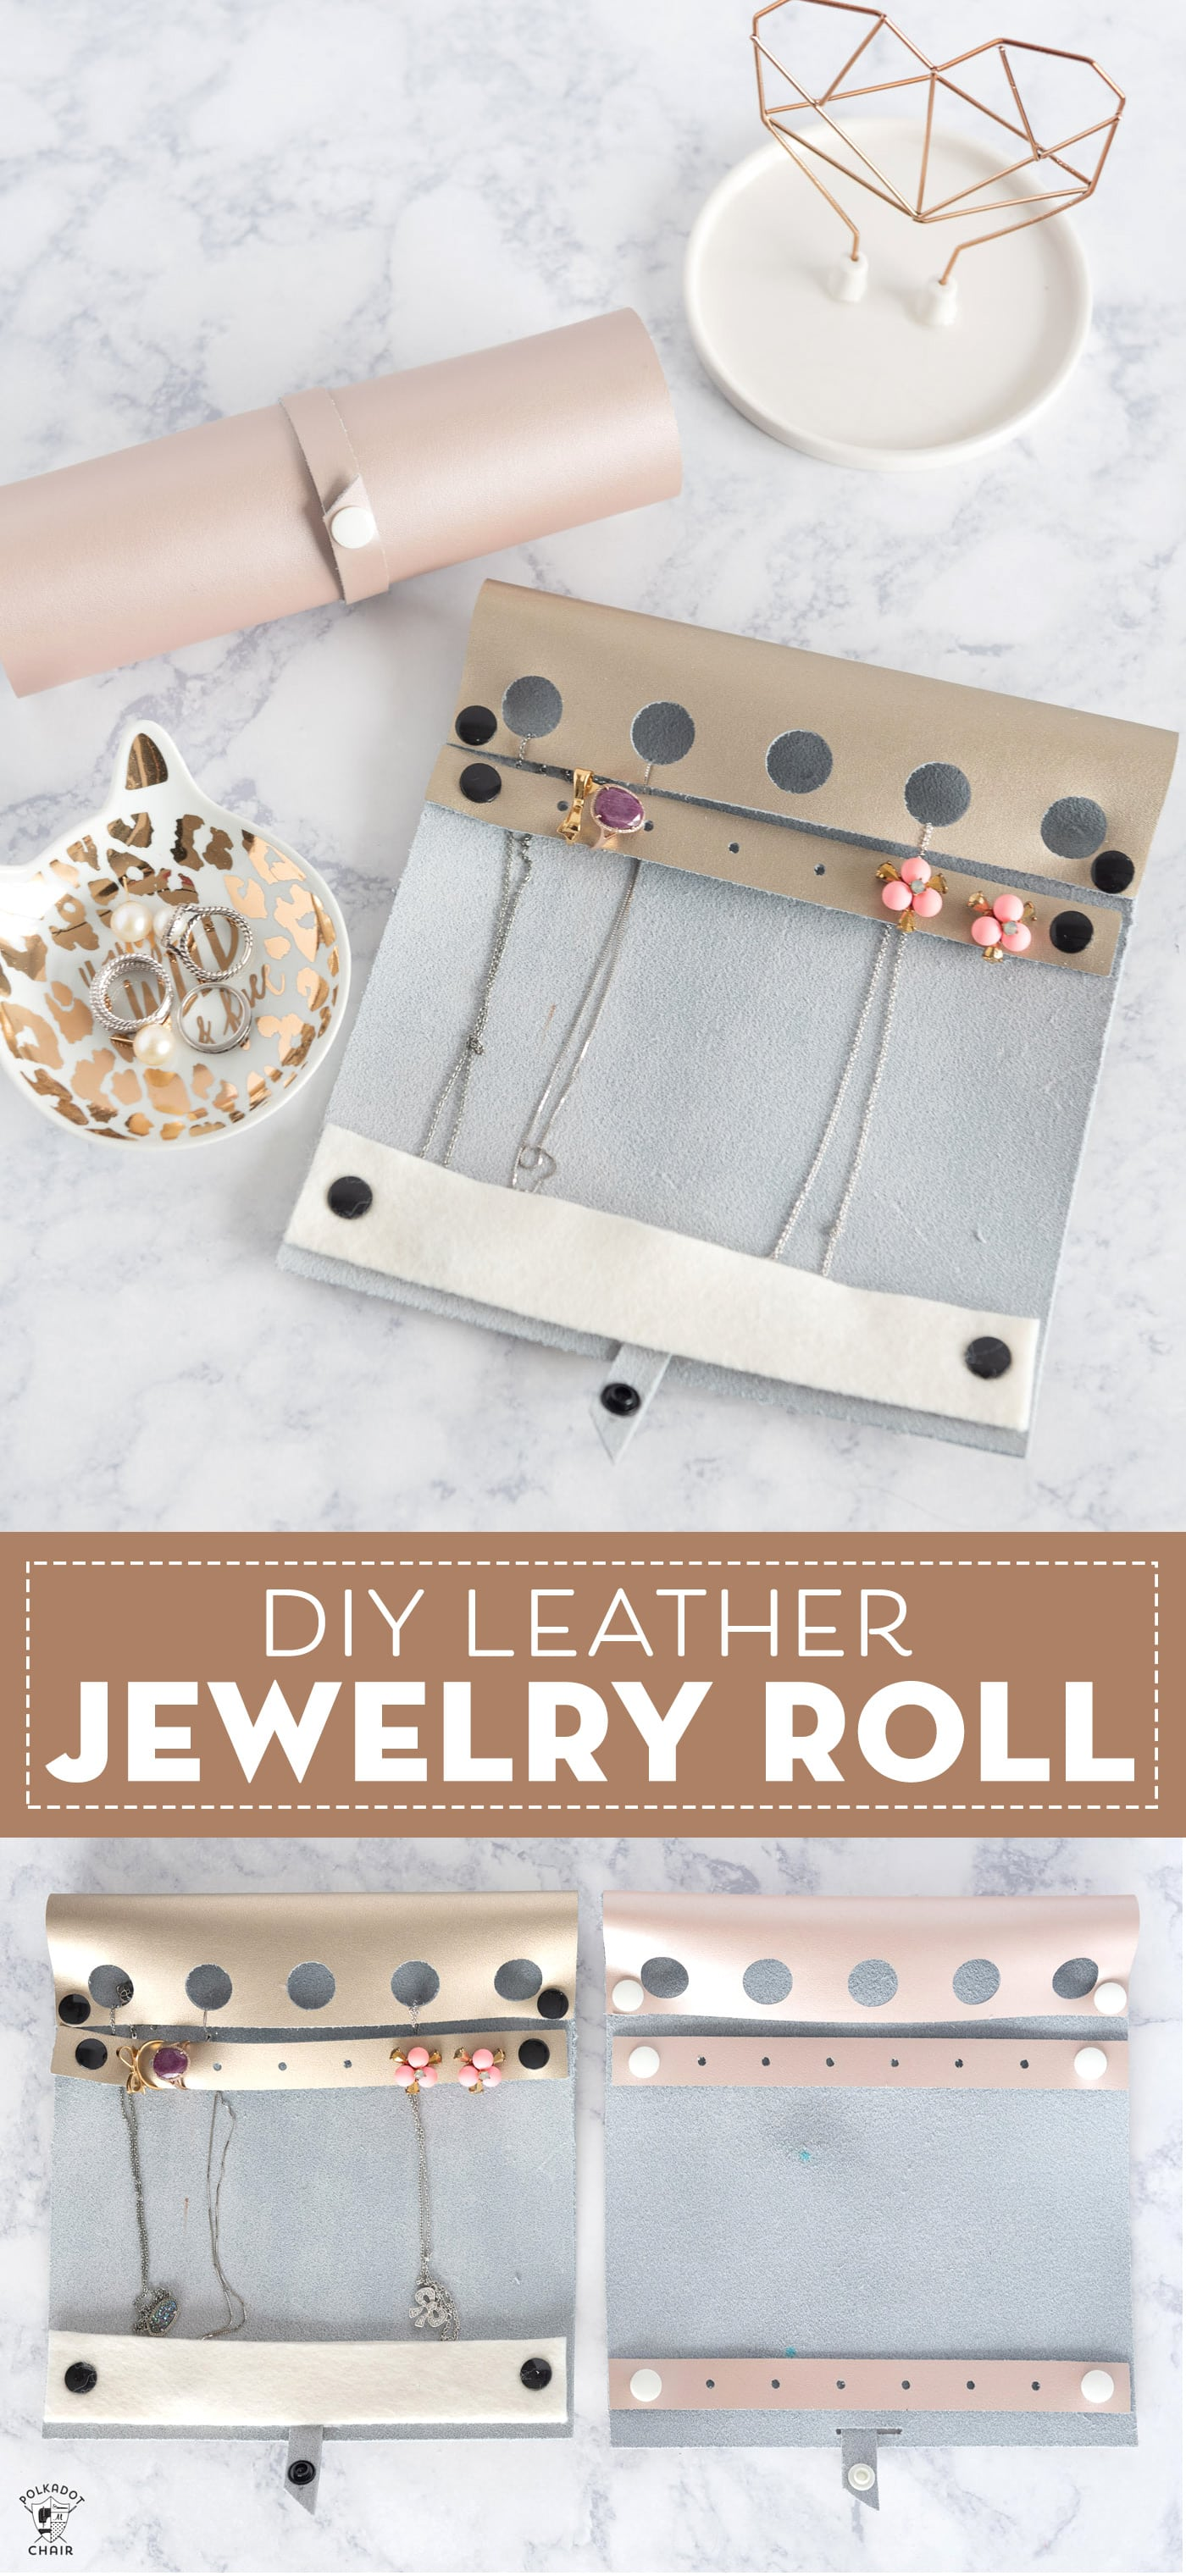 DIY Travel Jewelry Roll